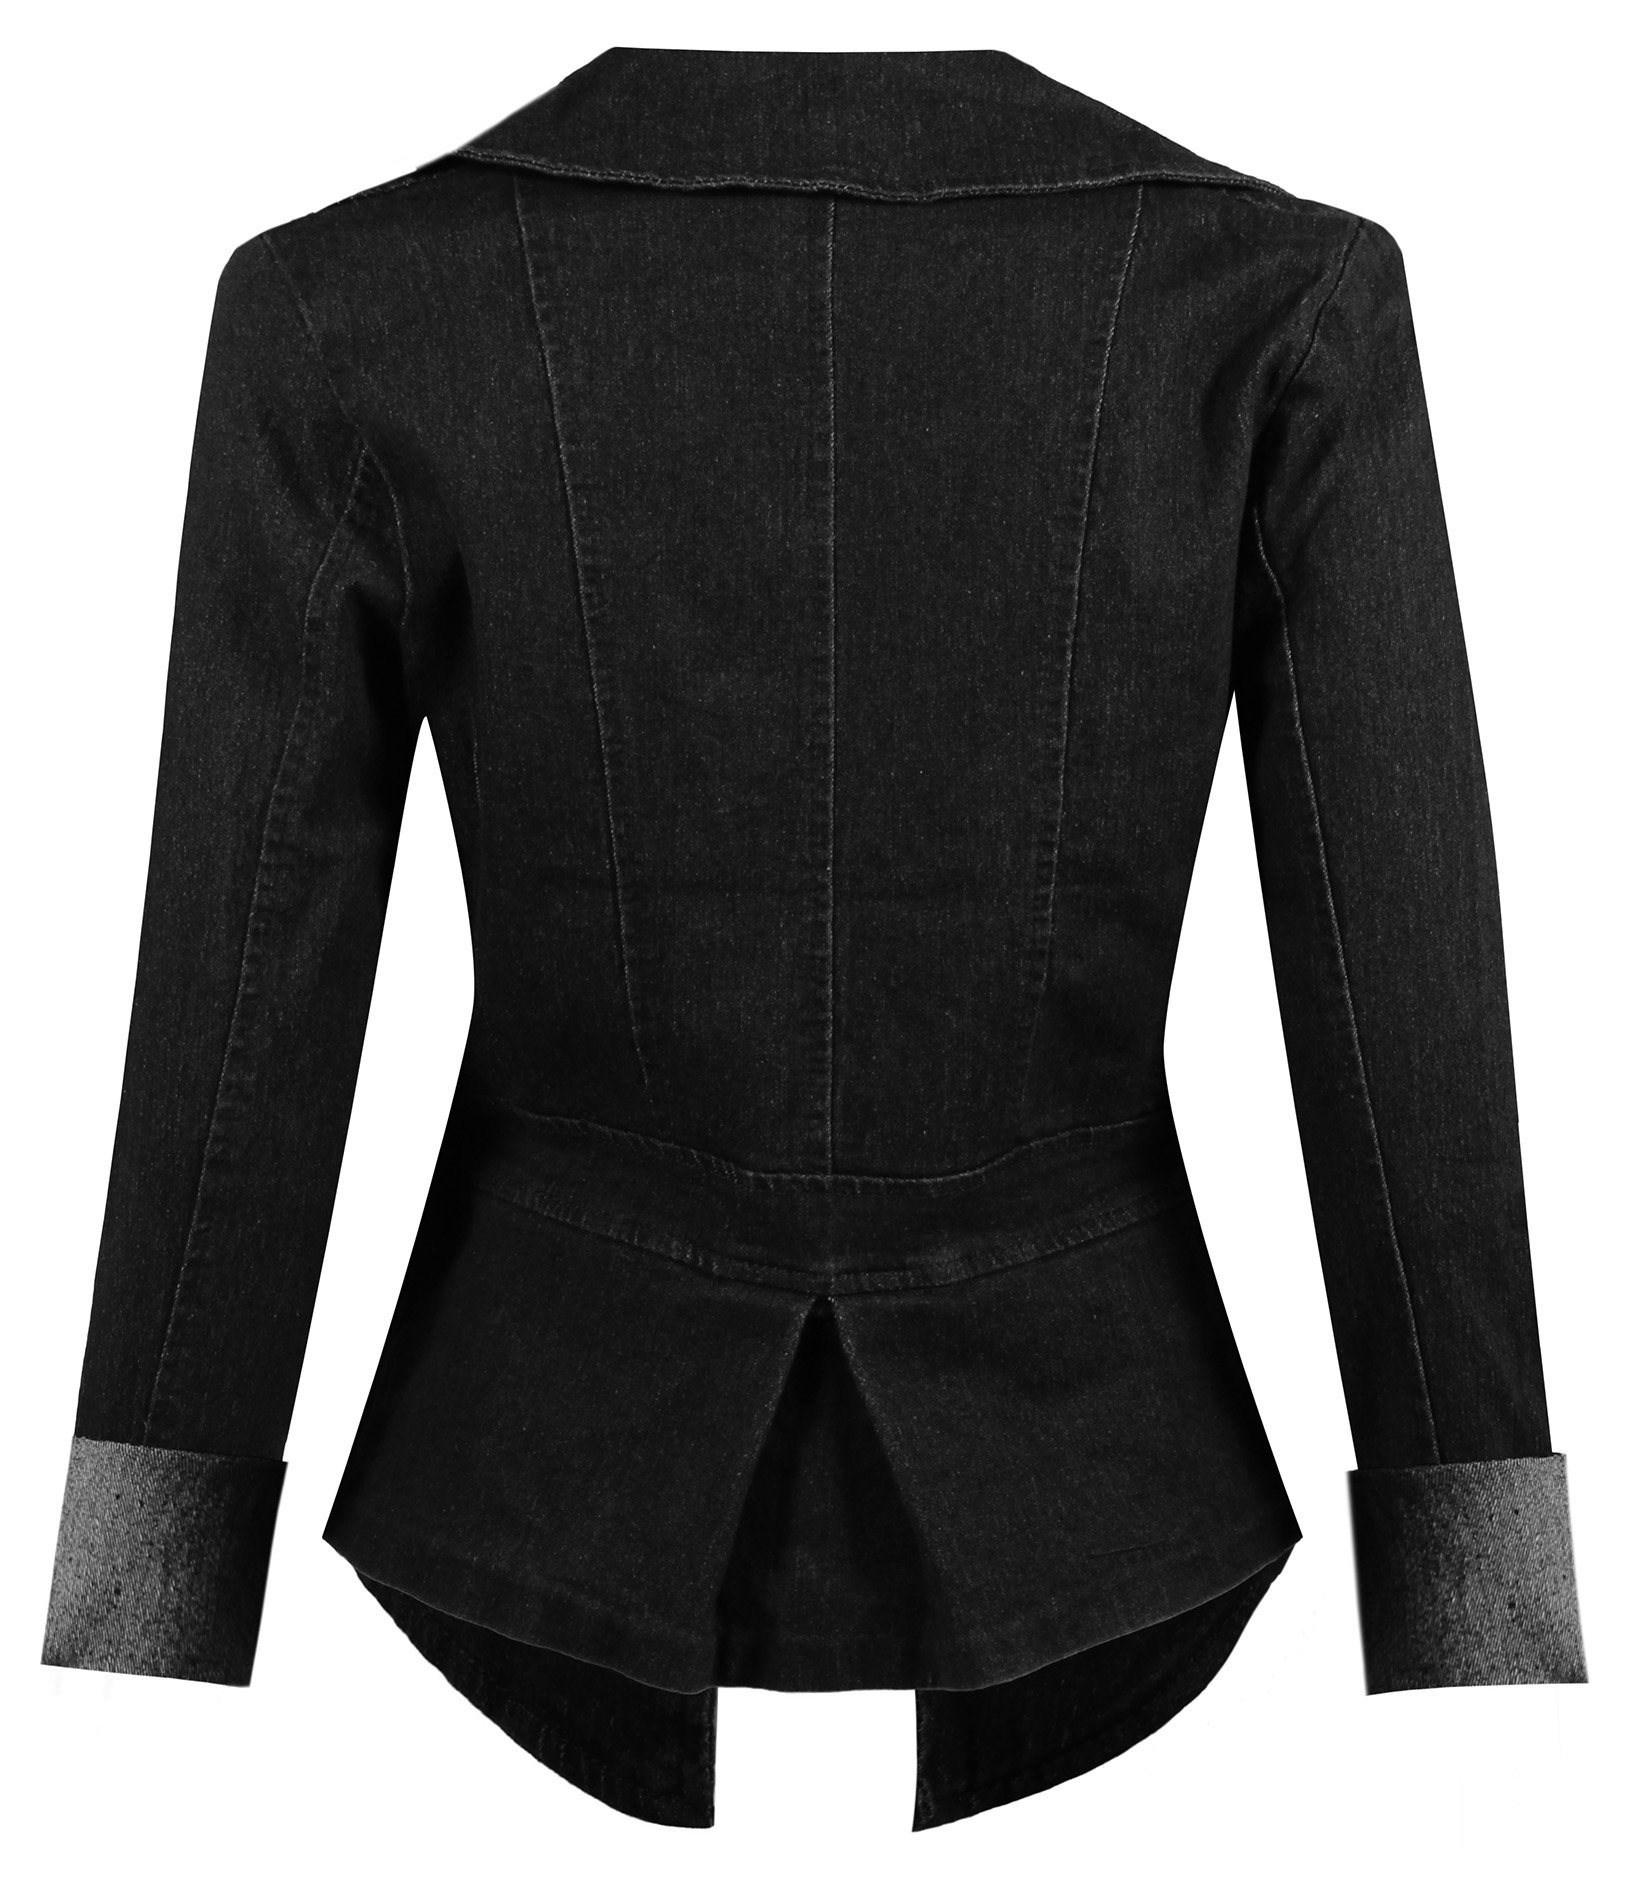 HOT FROM HOLLYWOOD Women's Button Down Long Sleeve Classic Outerwear Denim Jacket by HOT FROM HOLLYWOOD (Image #2)